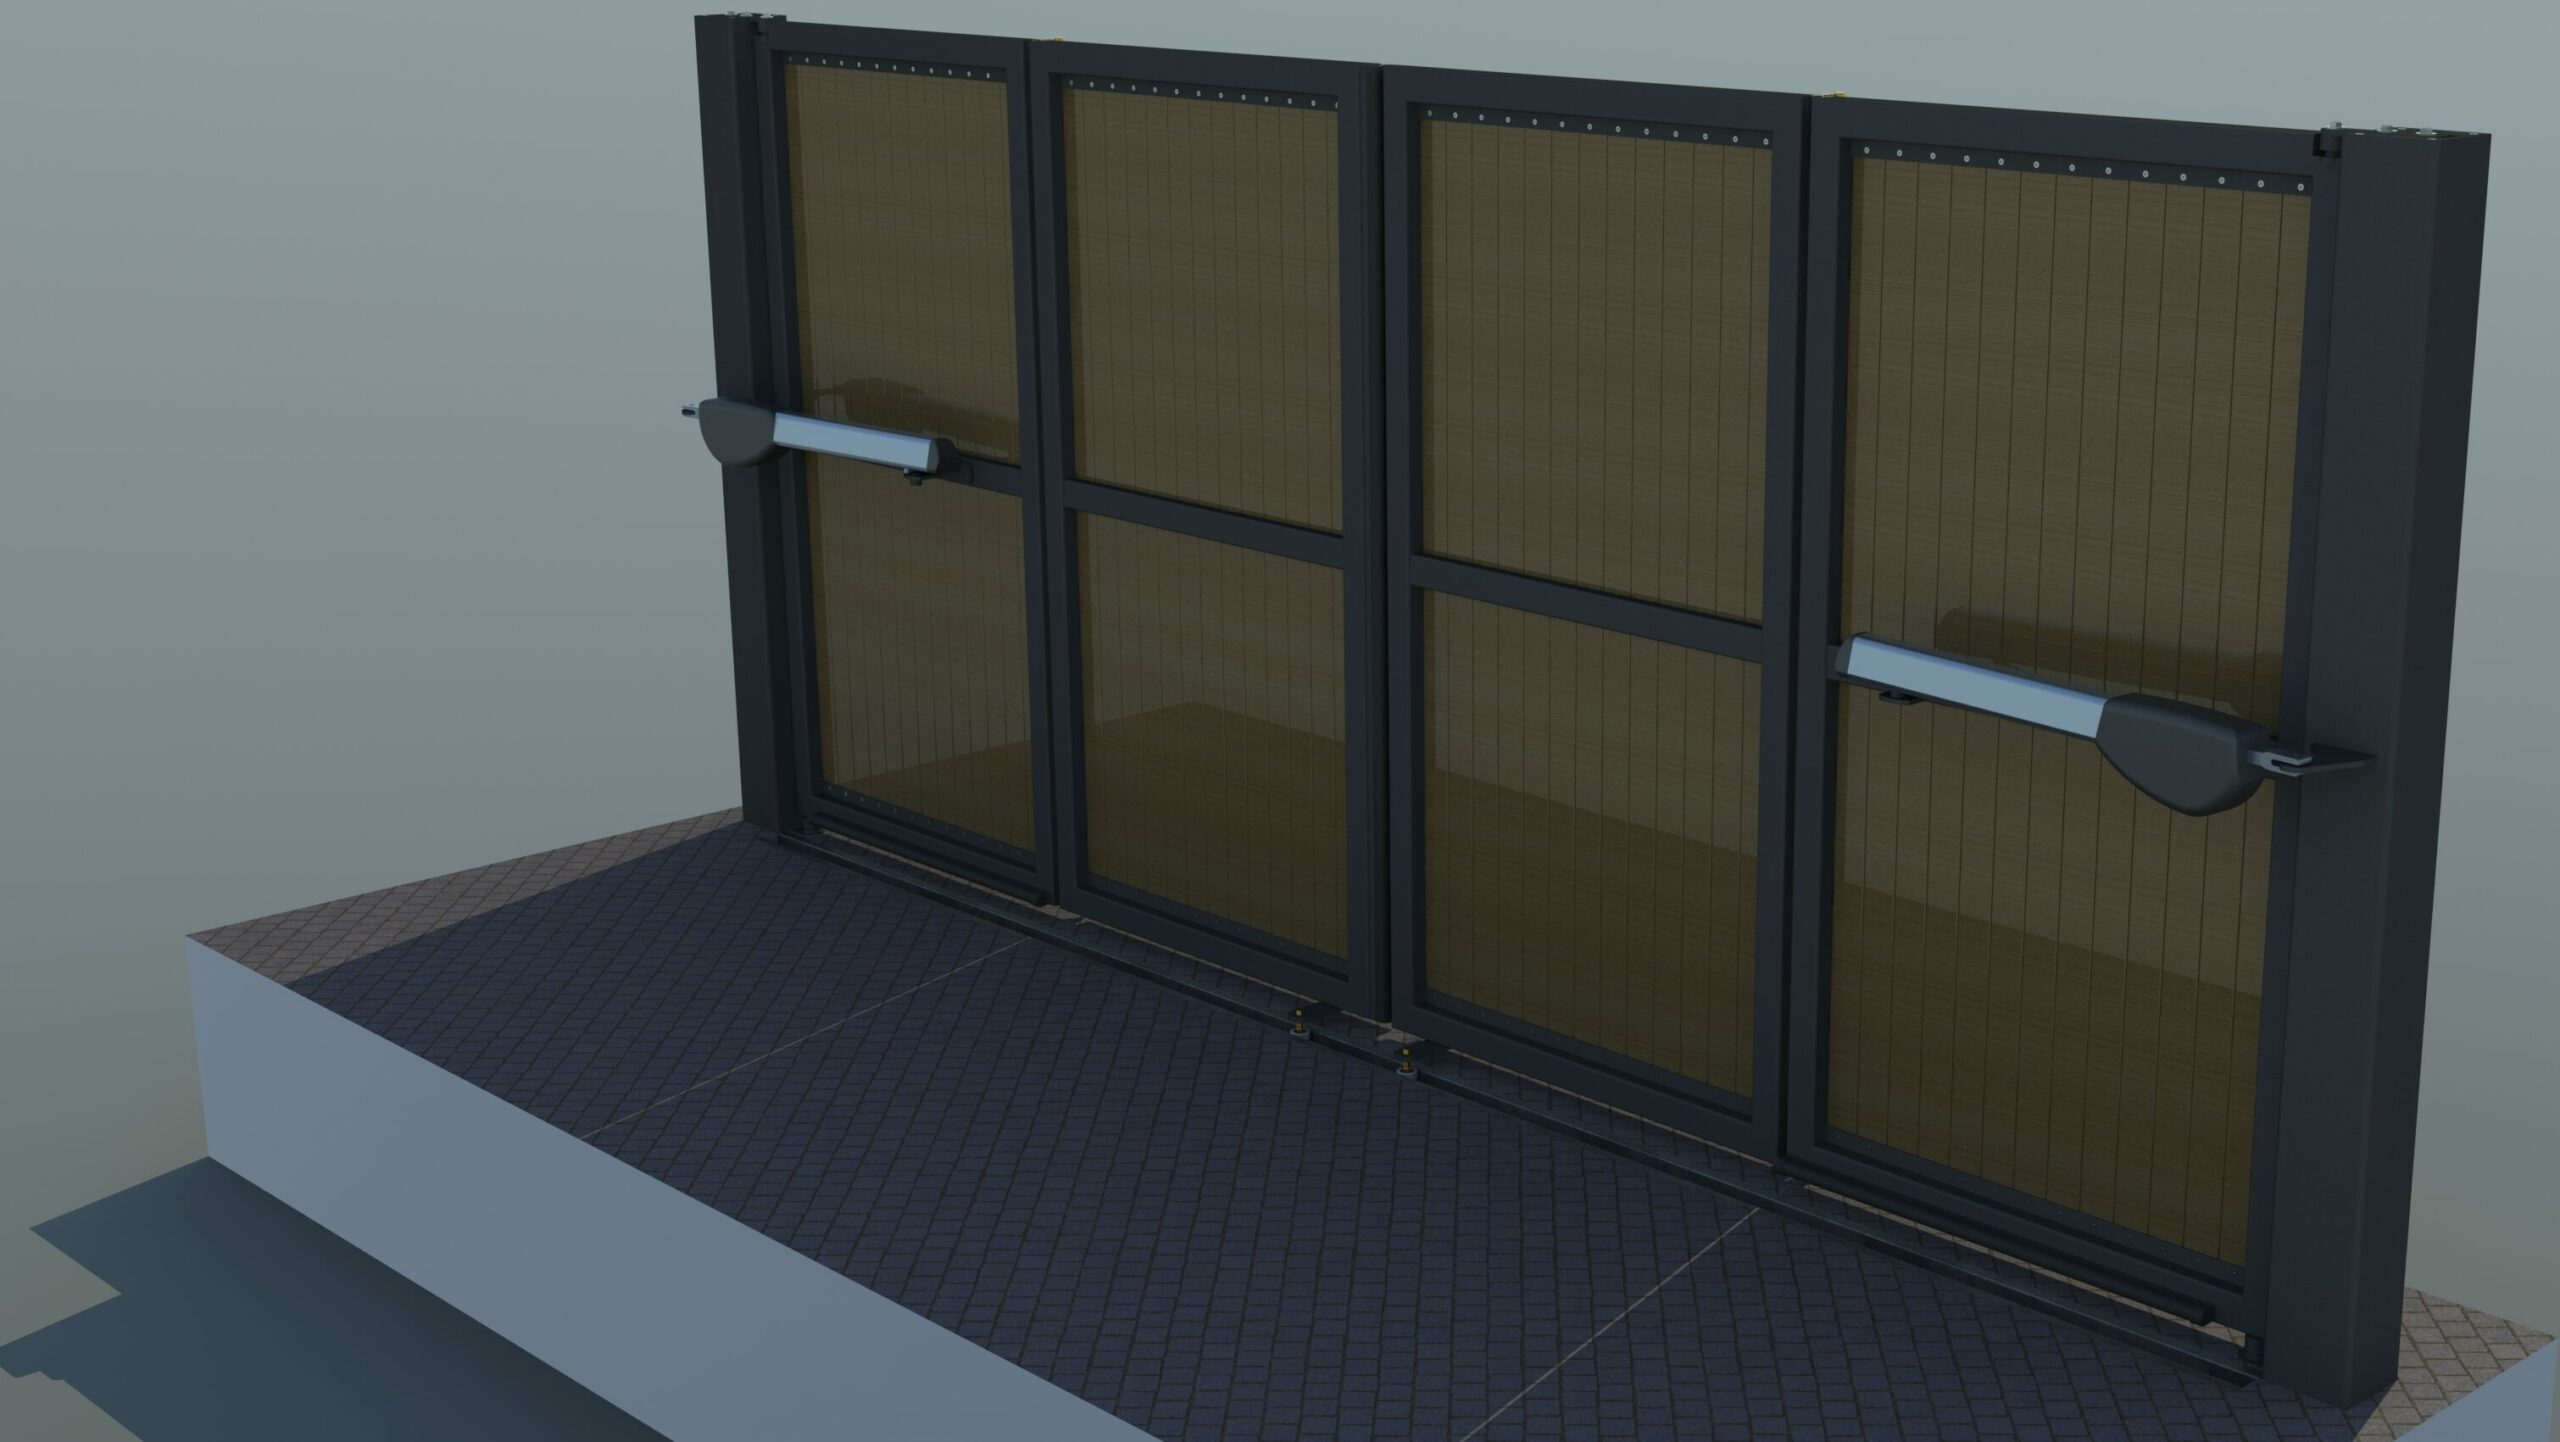 Rendering of automatic PVC gates